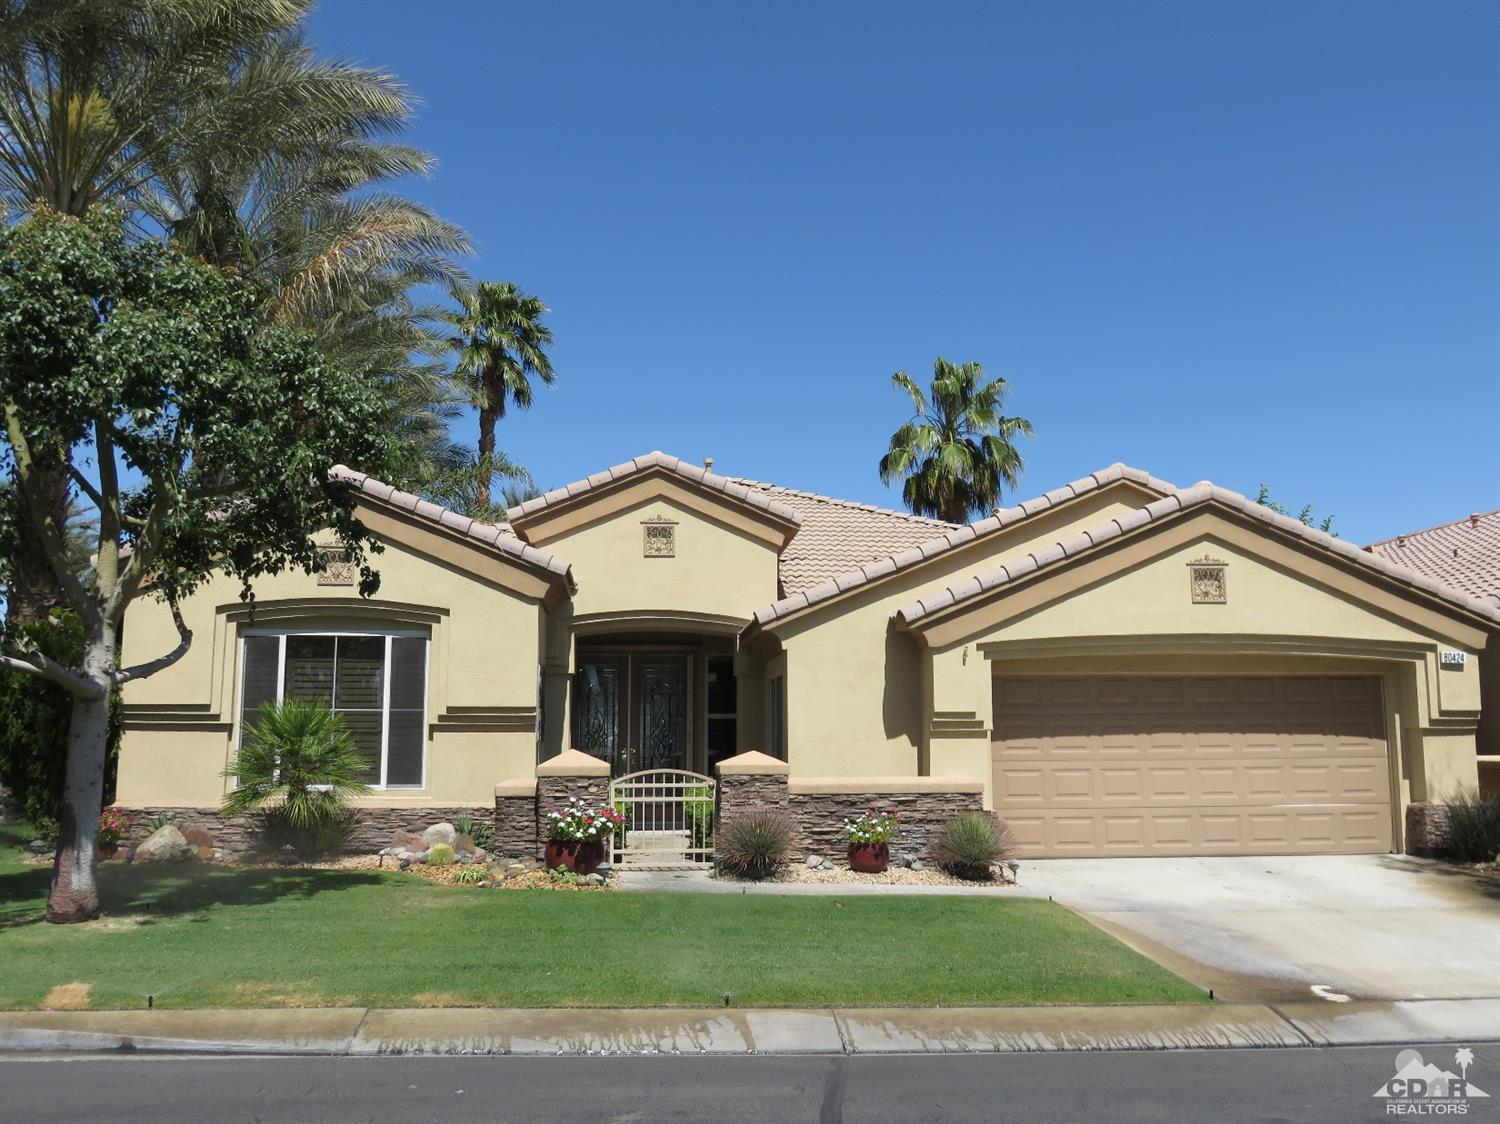 80424 Muirfield Drive, Indio, CA 92201